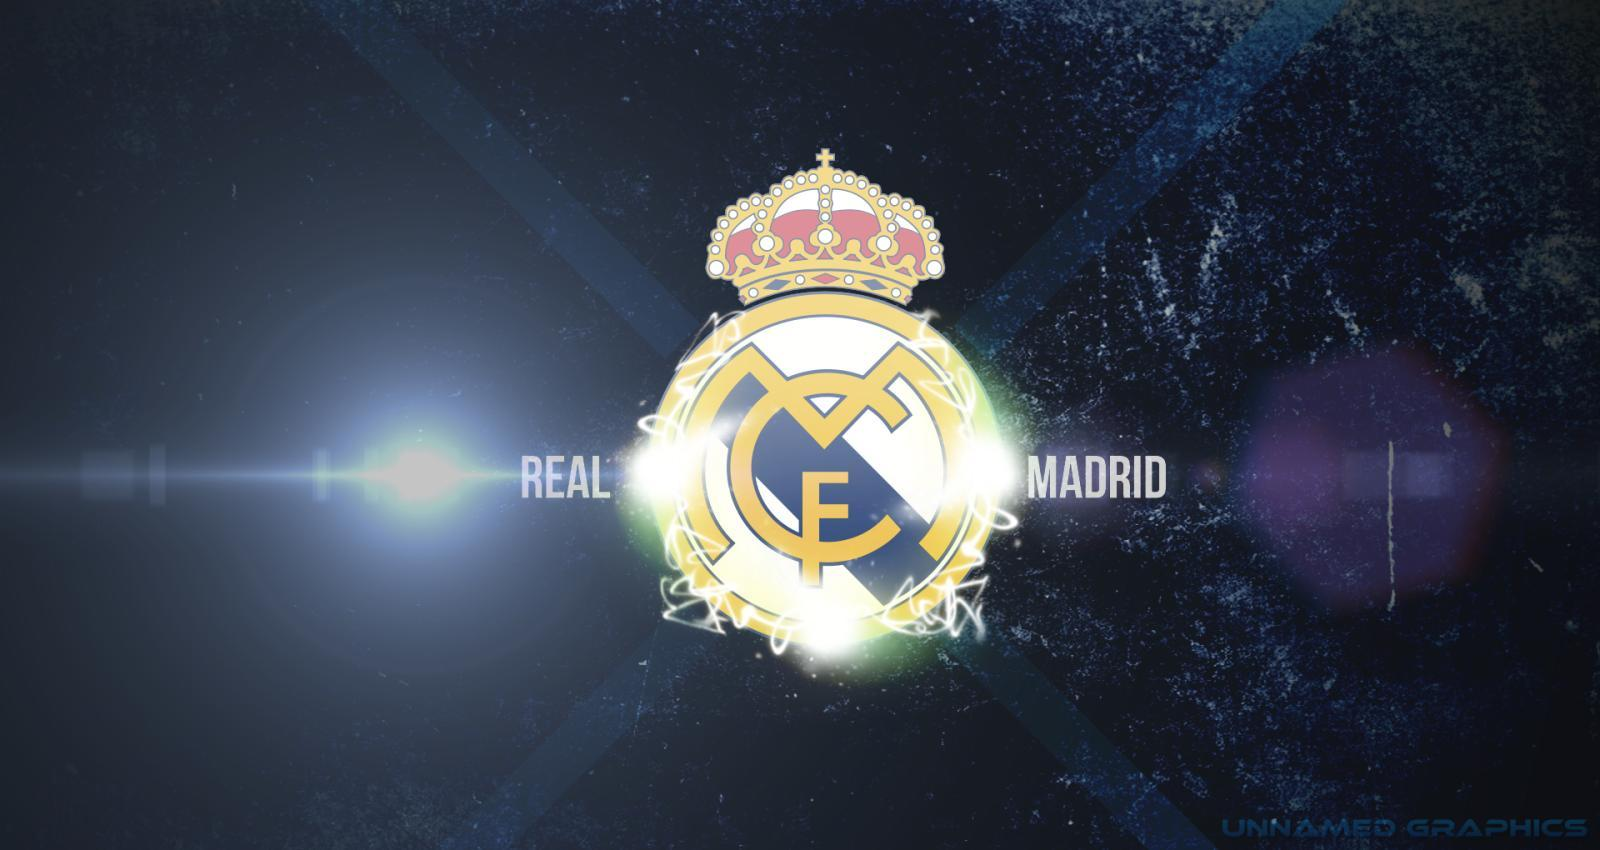 Rate&CC]RealMadrid Wallpaper